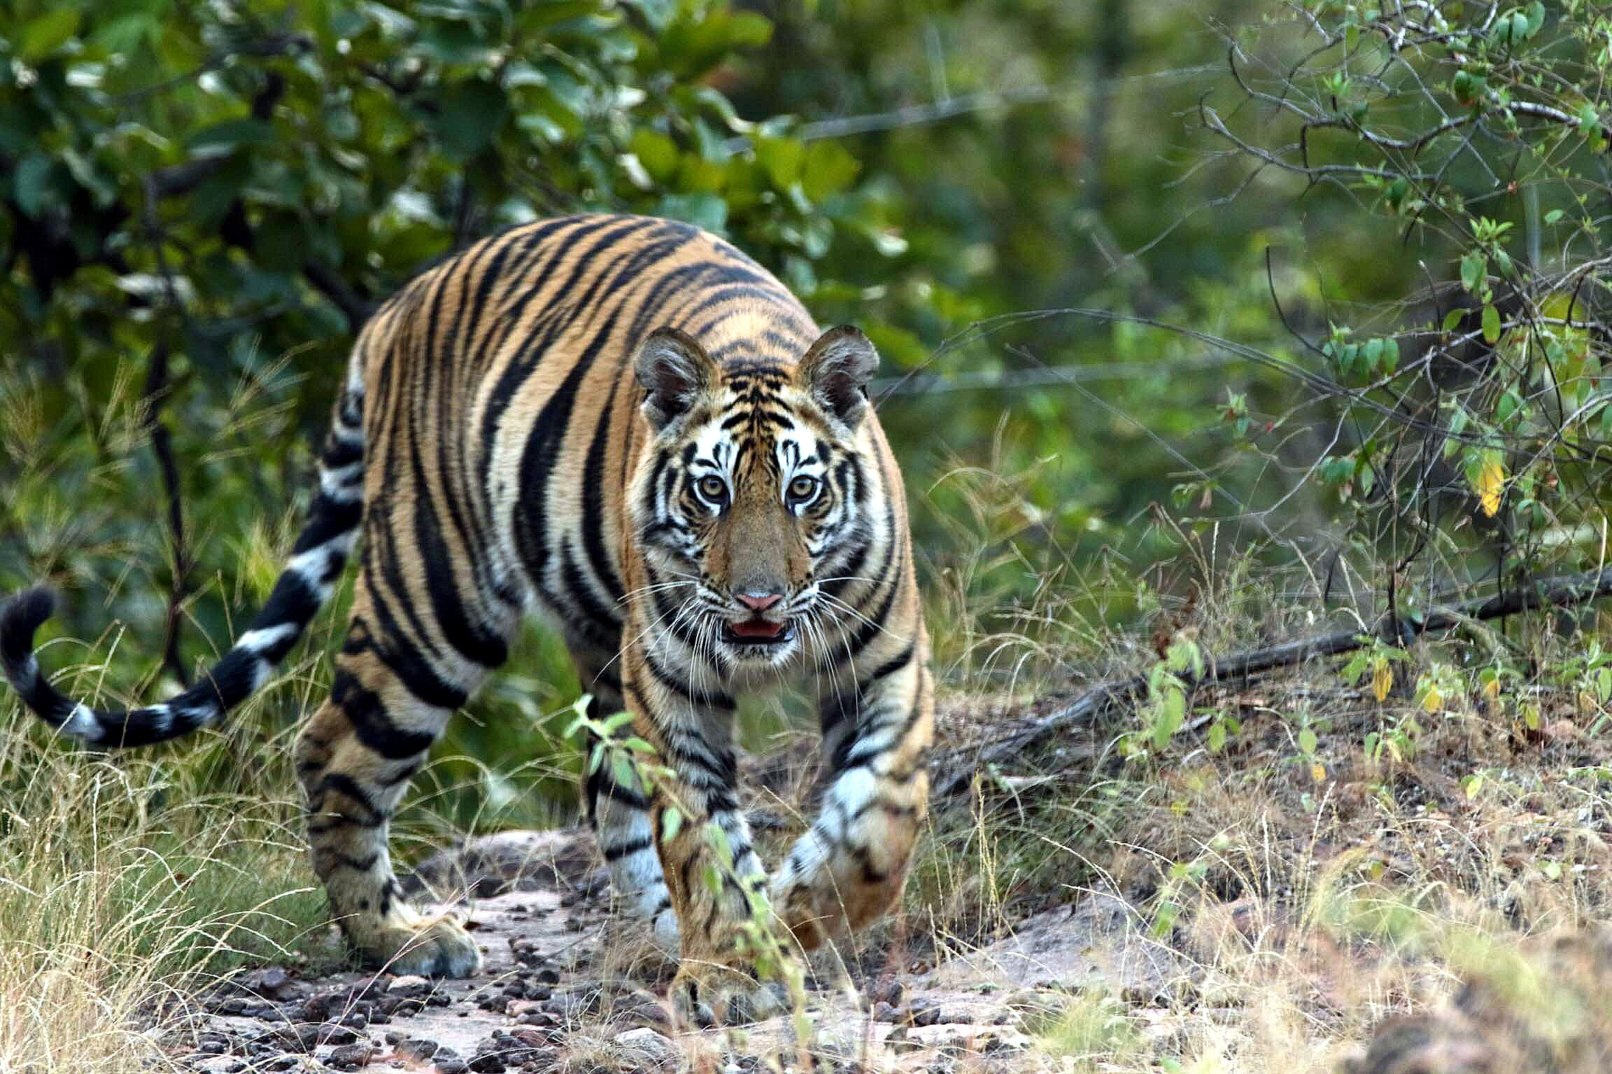 A Bengal tiger in Pench National Park